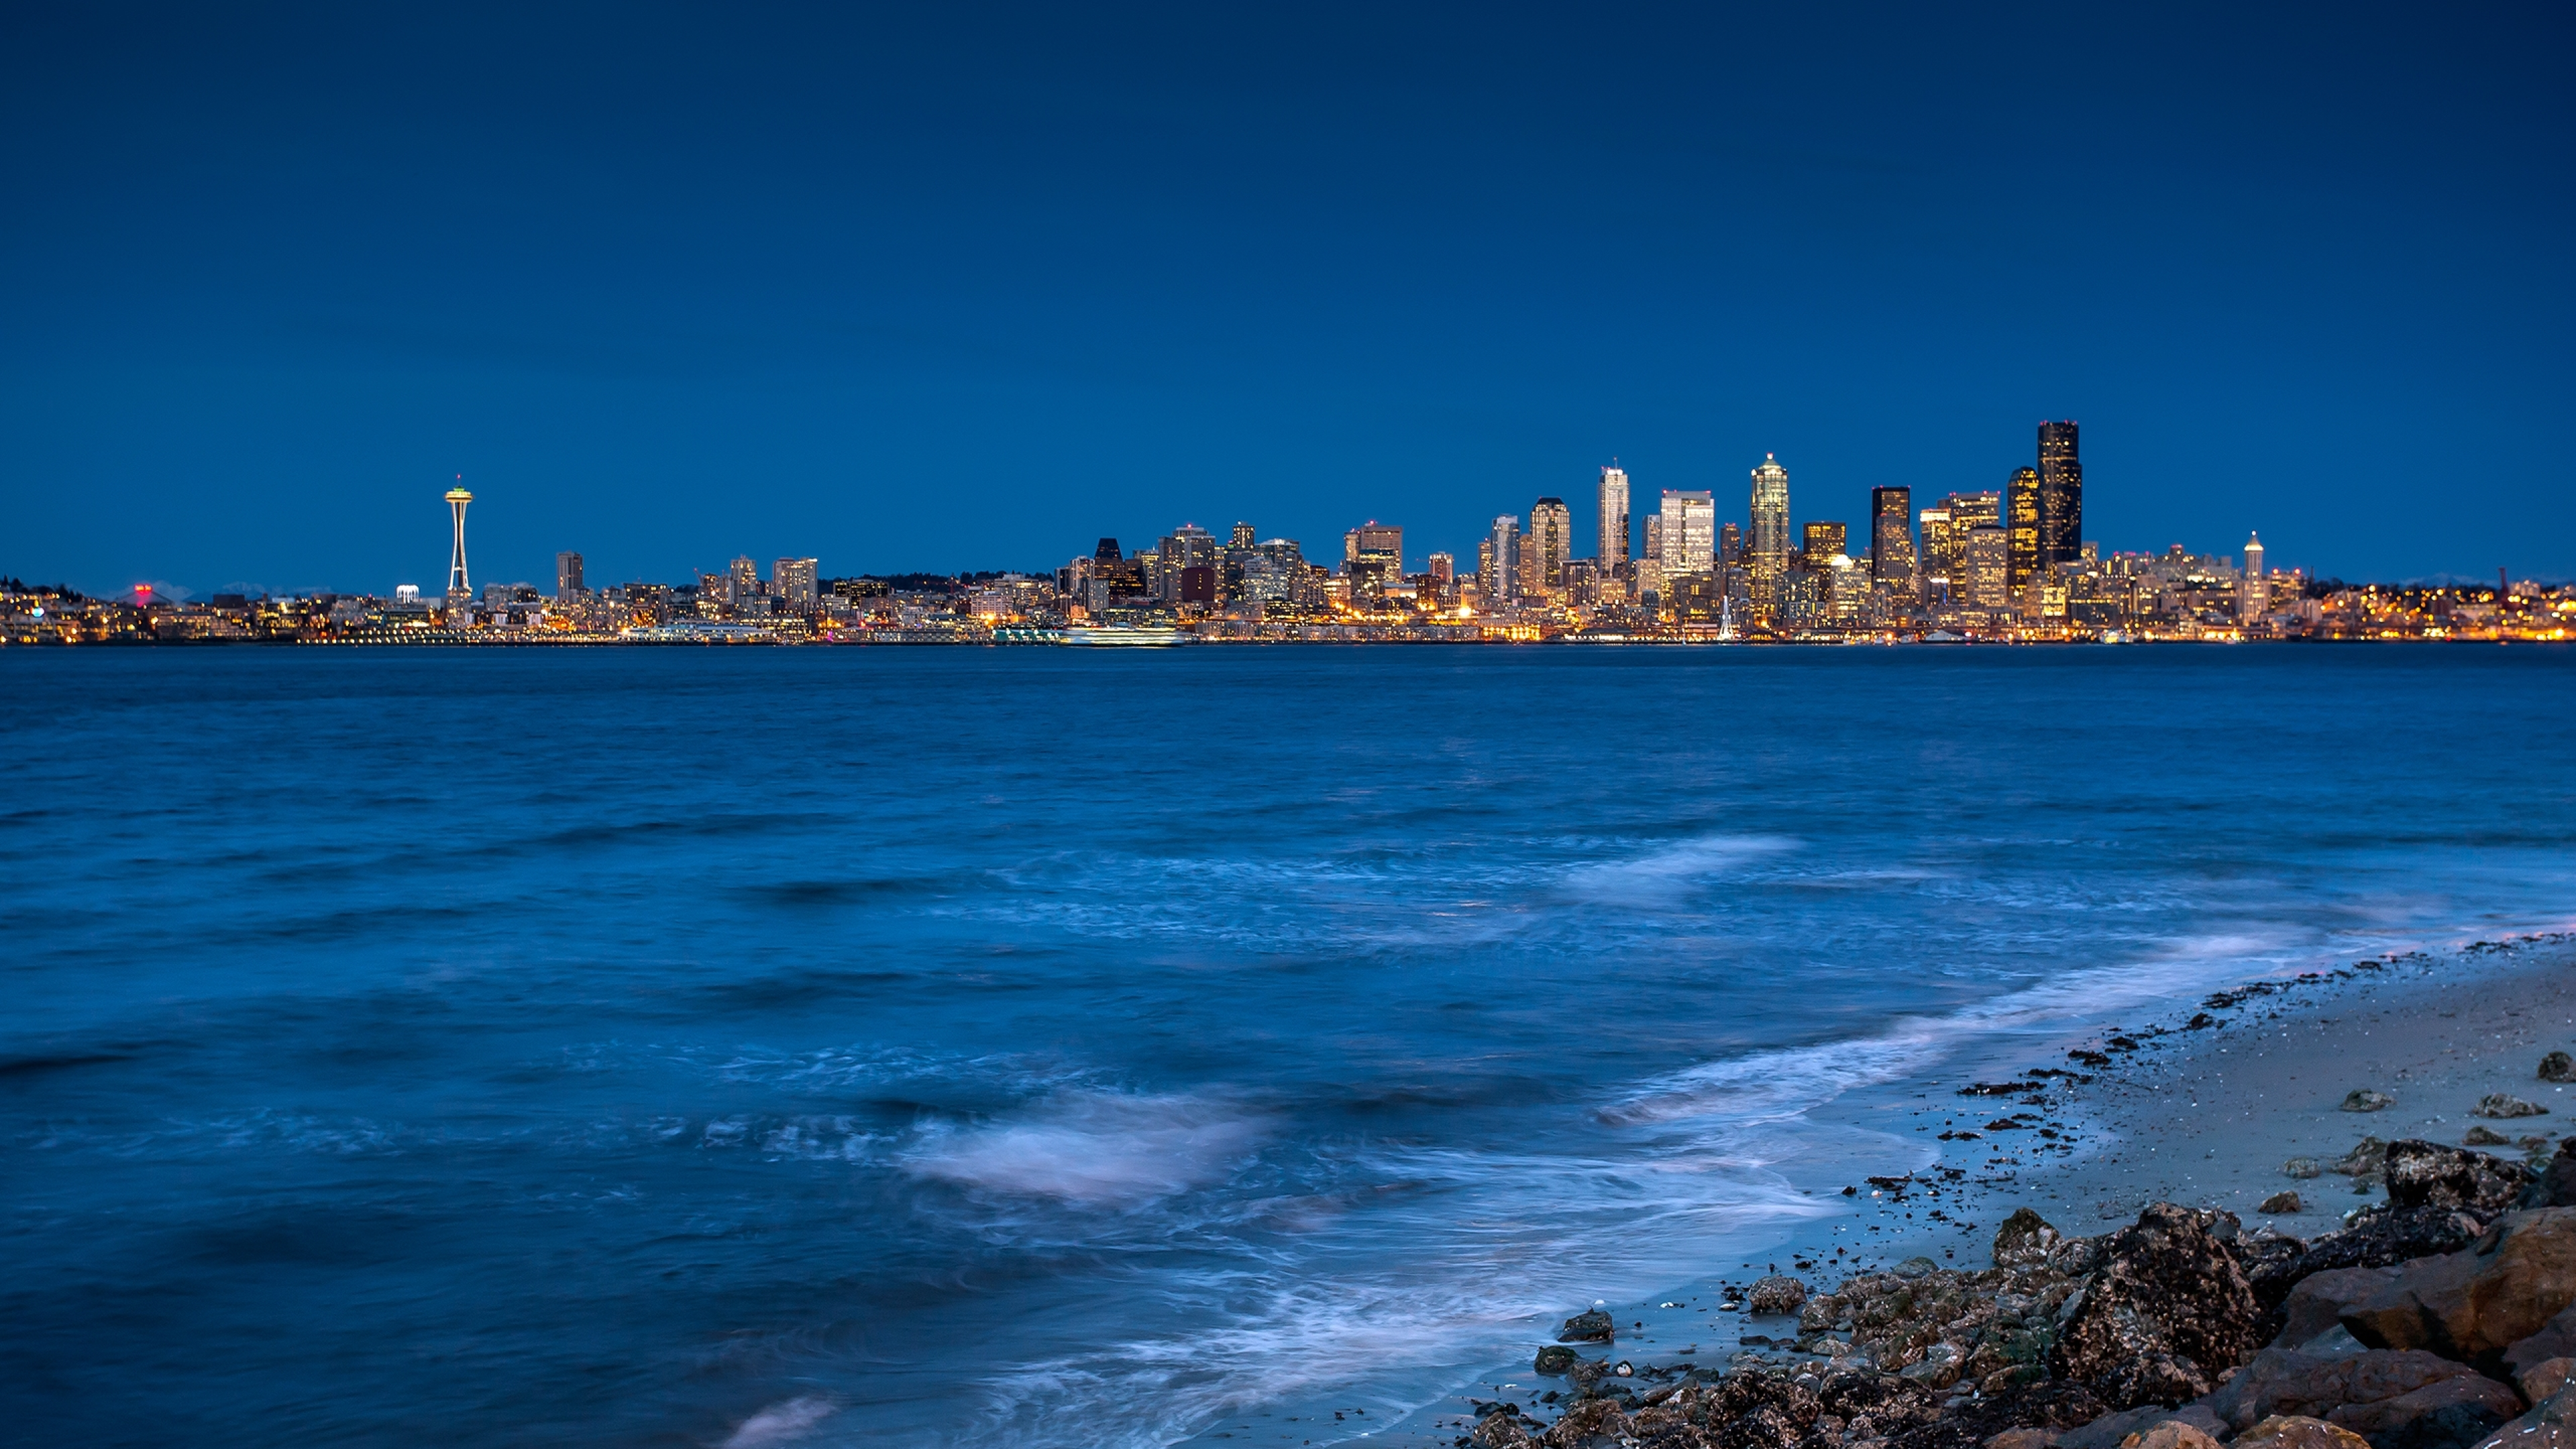 3840x2160 Seattle City Sea 4k Wallpaper Hd City 4k Wallpapers Images Photos And Background